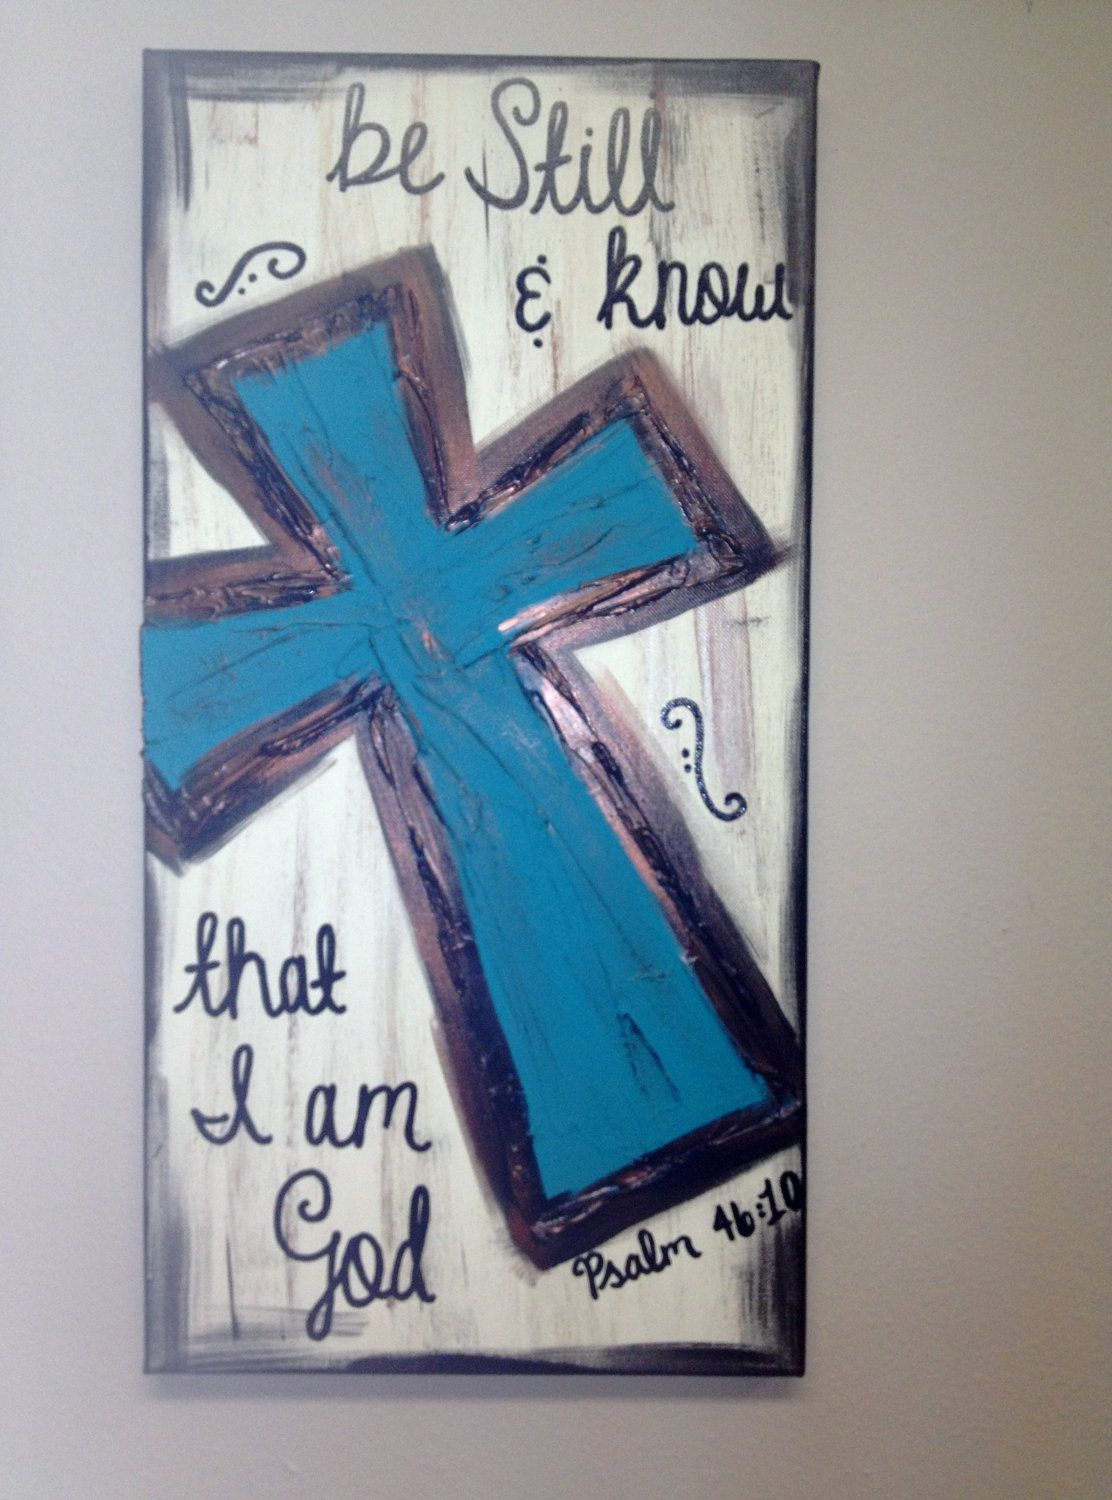 Be still & know that I am God. Love this!